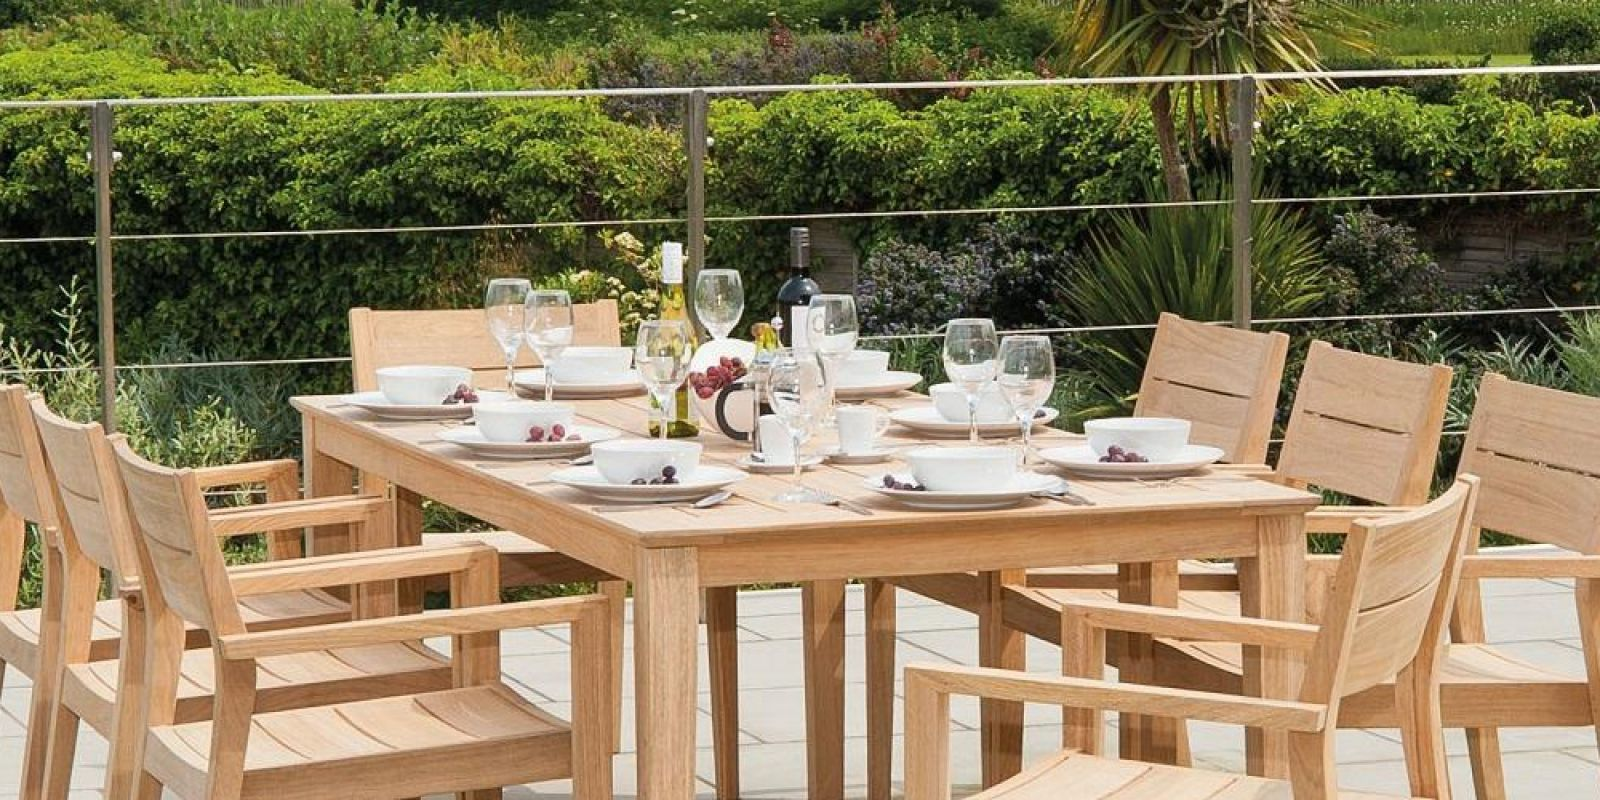 Outdoor Furniture | American Casual Living on Casual Living Patio id=67581